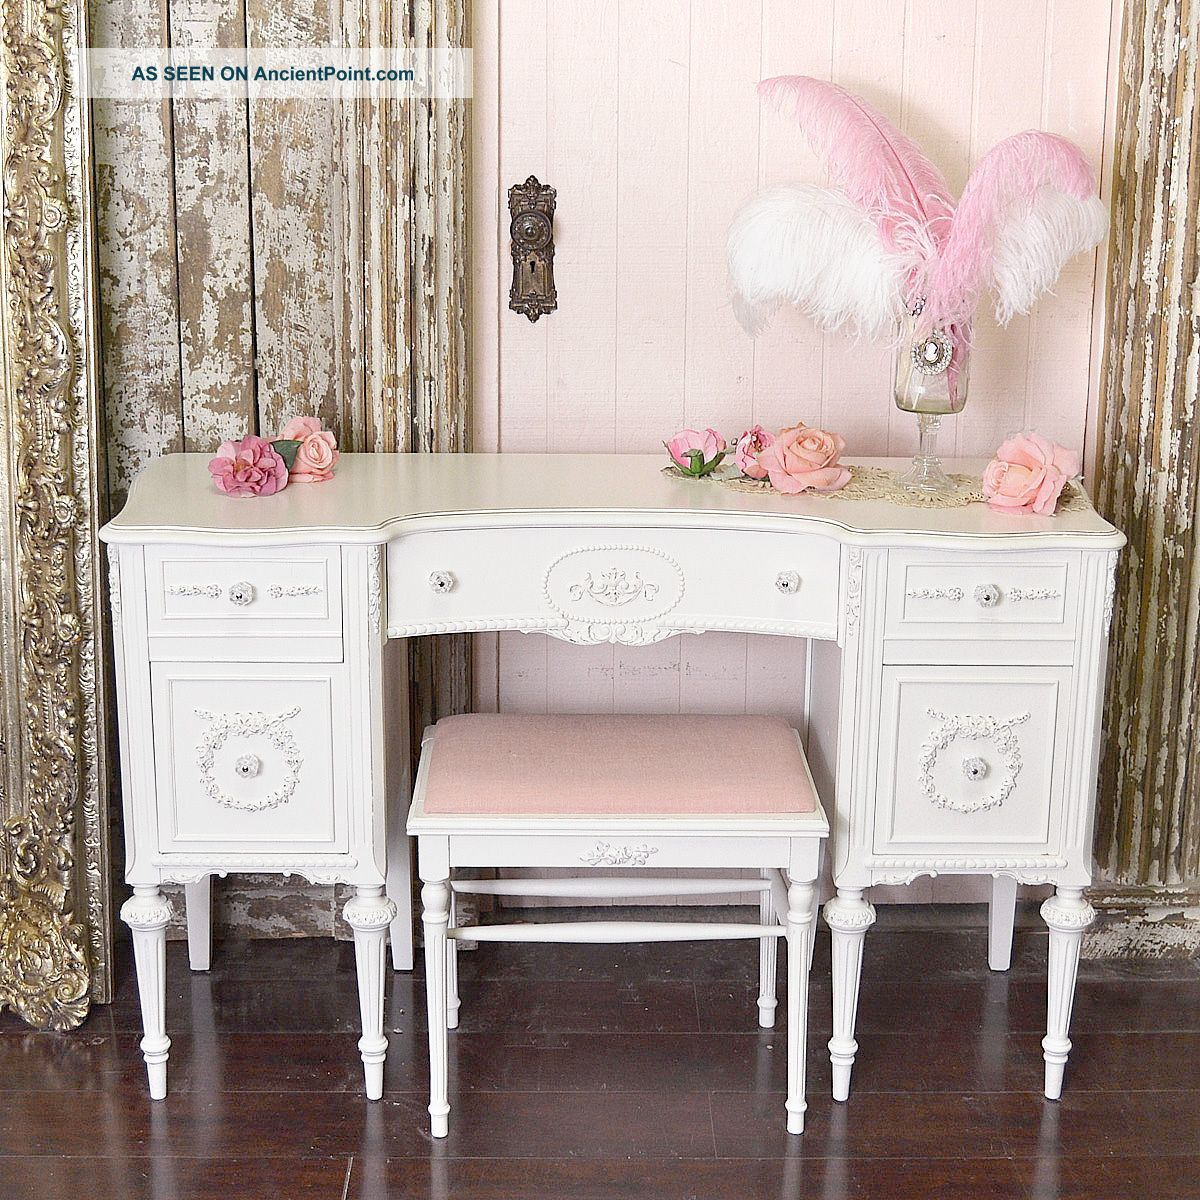 Shabby Cottage Chic White Vintage Style Vanity Desk 5 Drawer White Rose Wow 1900-1950 photo